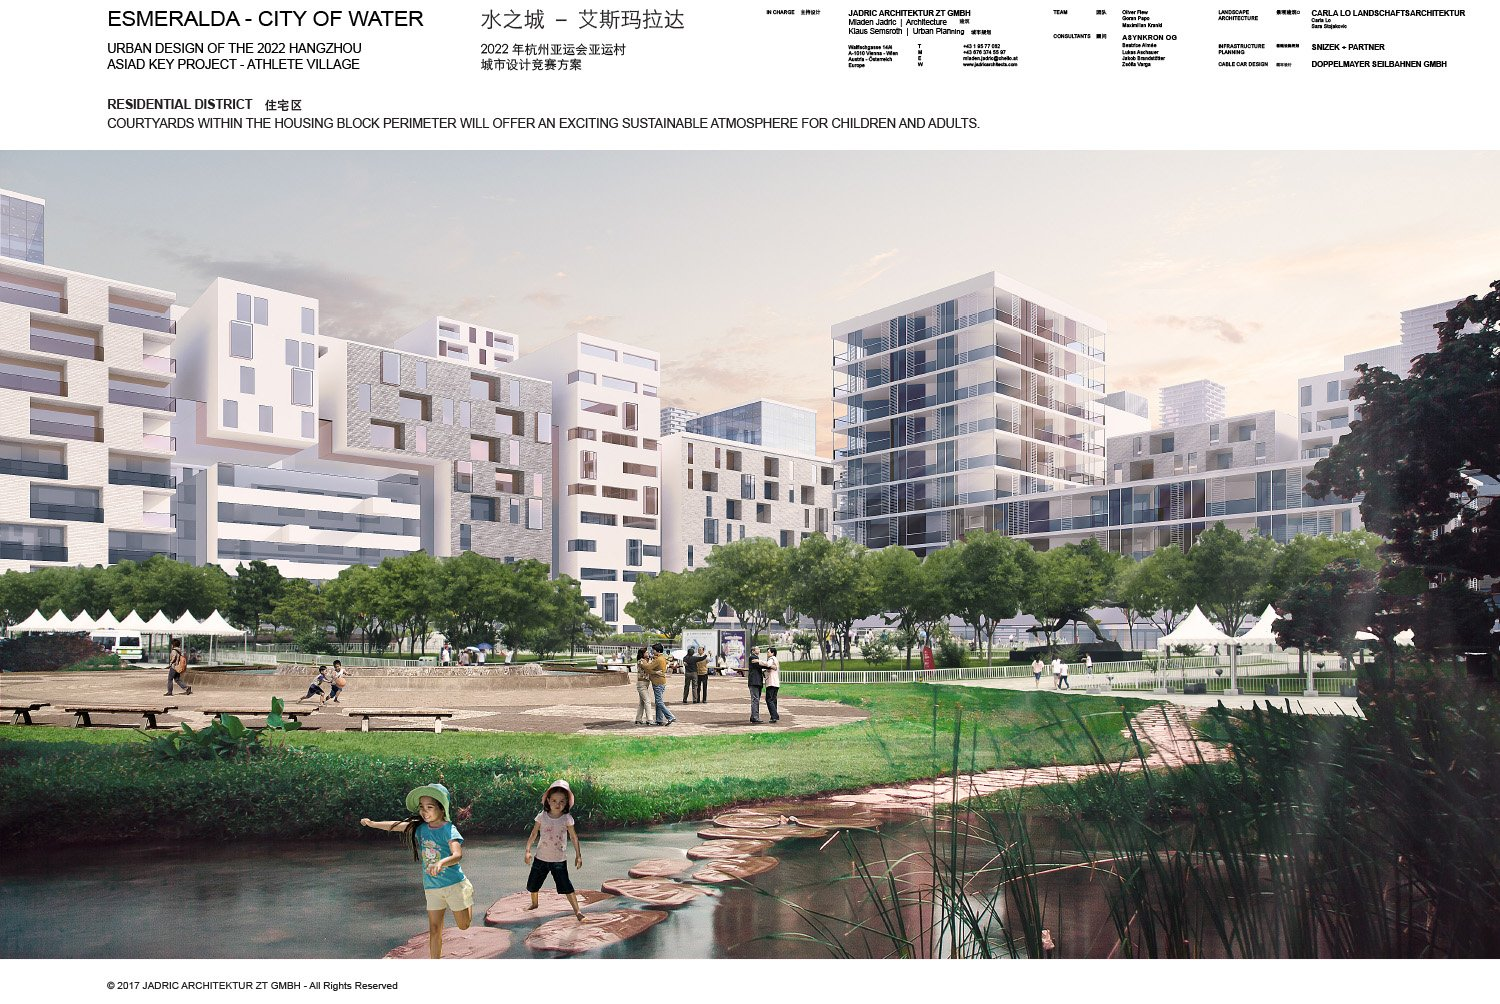 2022 Asian Games Key Project - Asiad Athlete Village - Residental District_courtyard atmosphere   © 2017 JADRIC ARCHITEKTUR ZT GMBH - All Rights Reserved